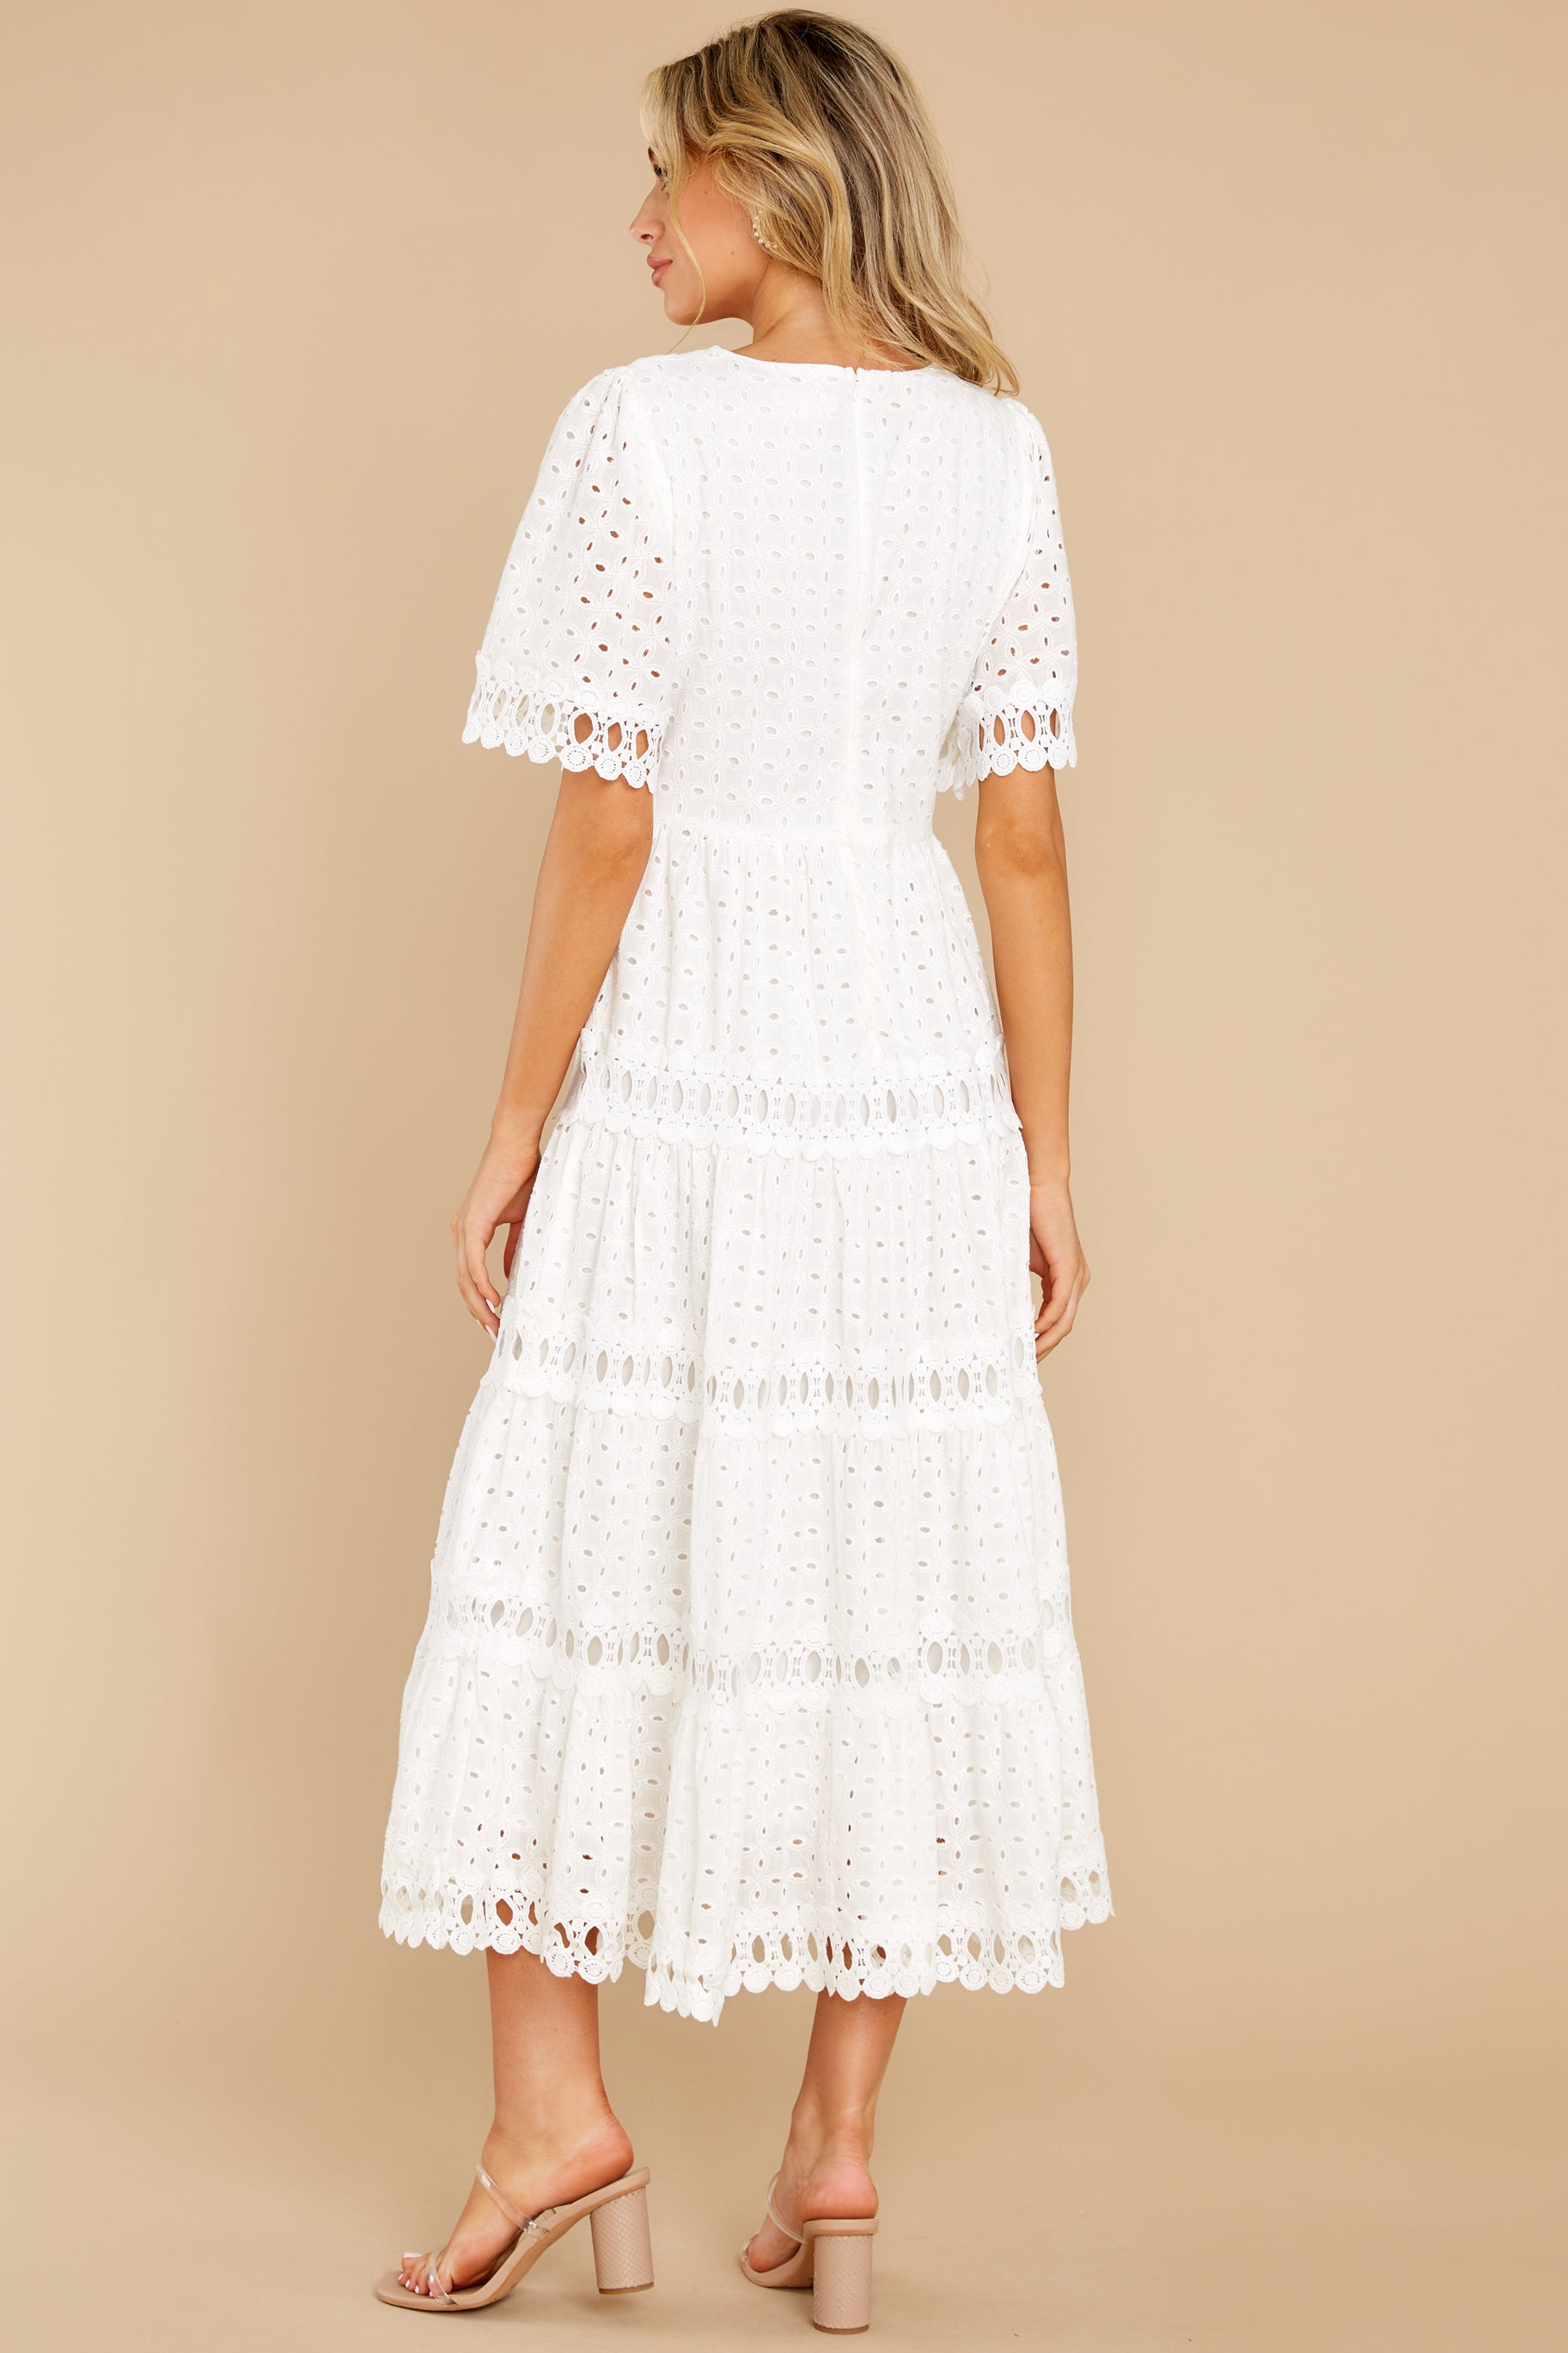 7 Couldn't Help It Off White Eyelet Maxi Dress at reddress.com